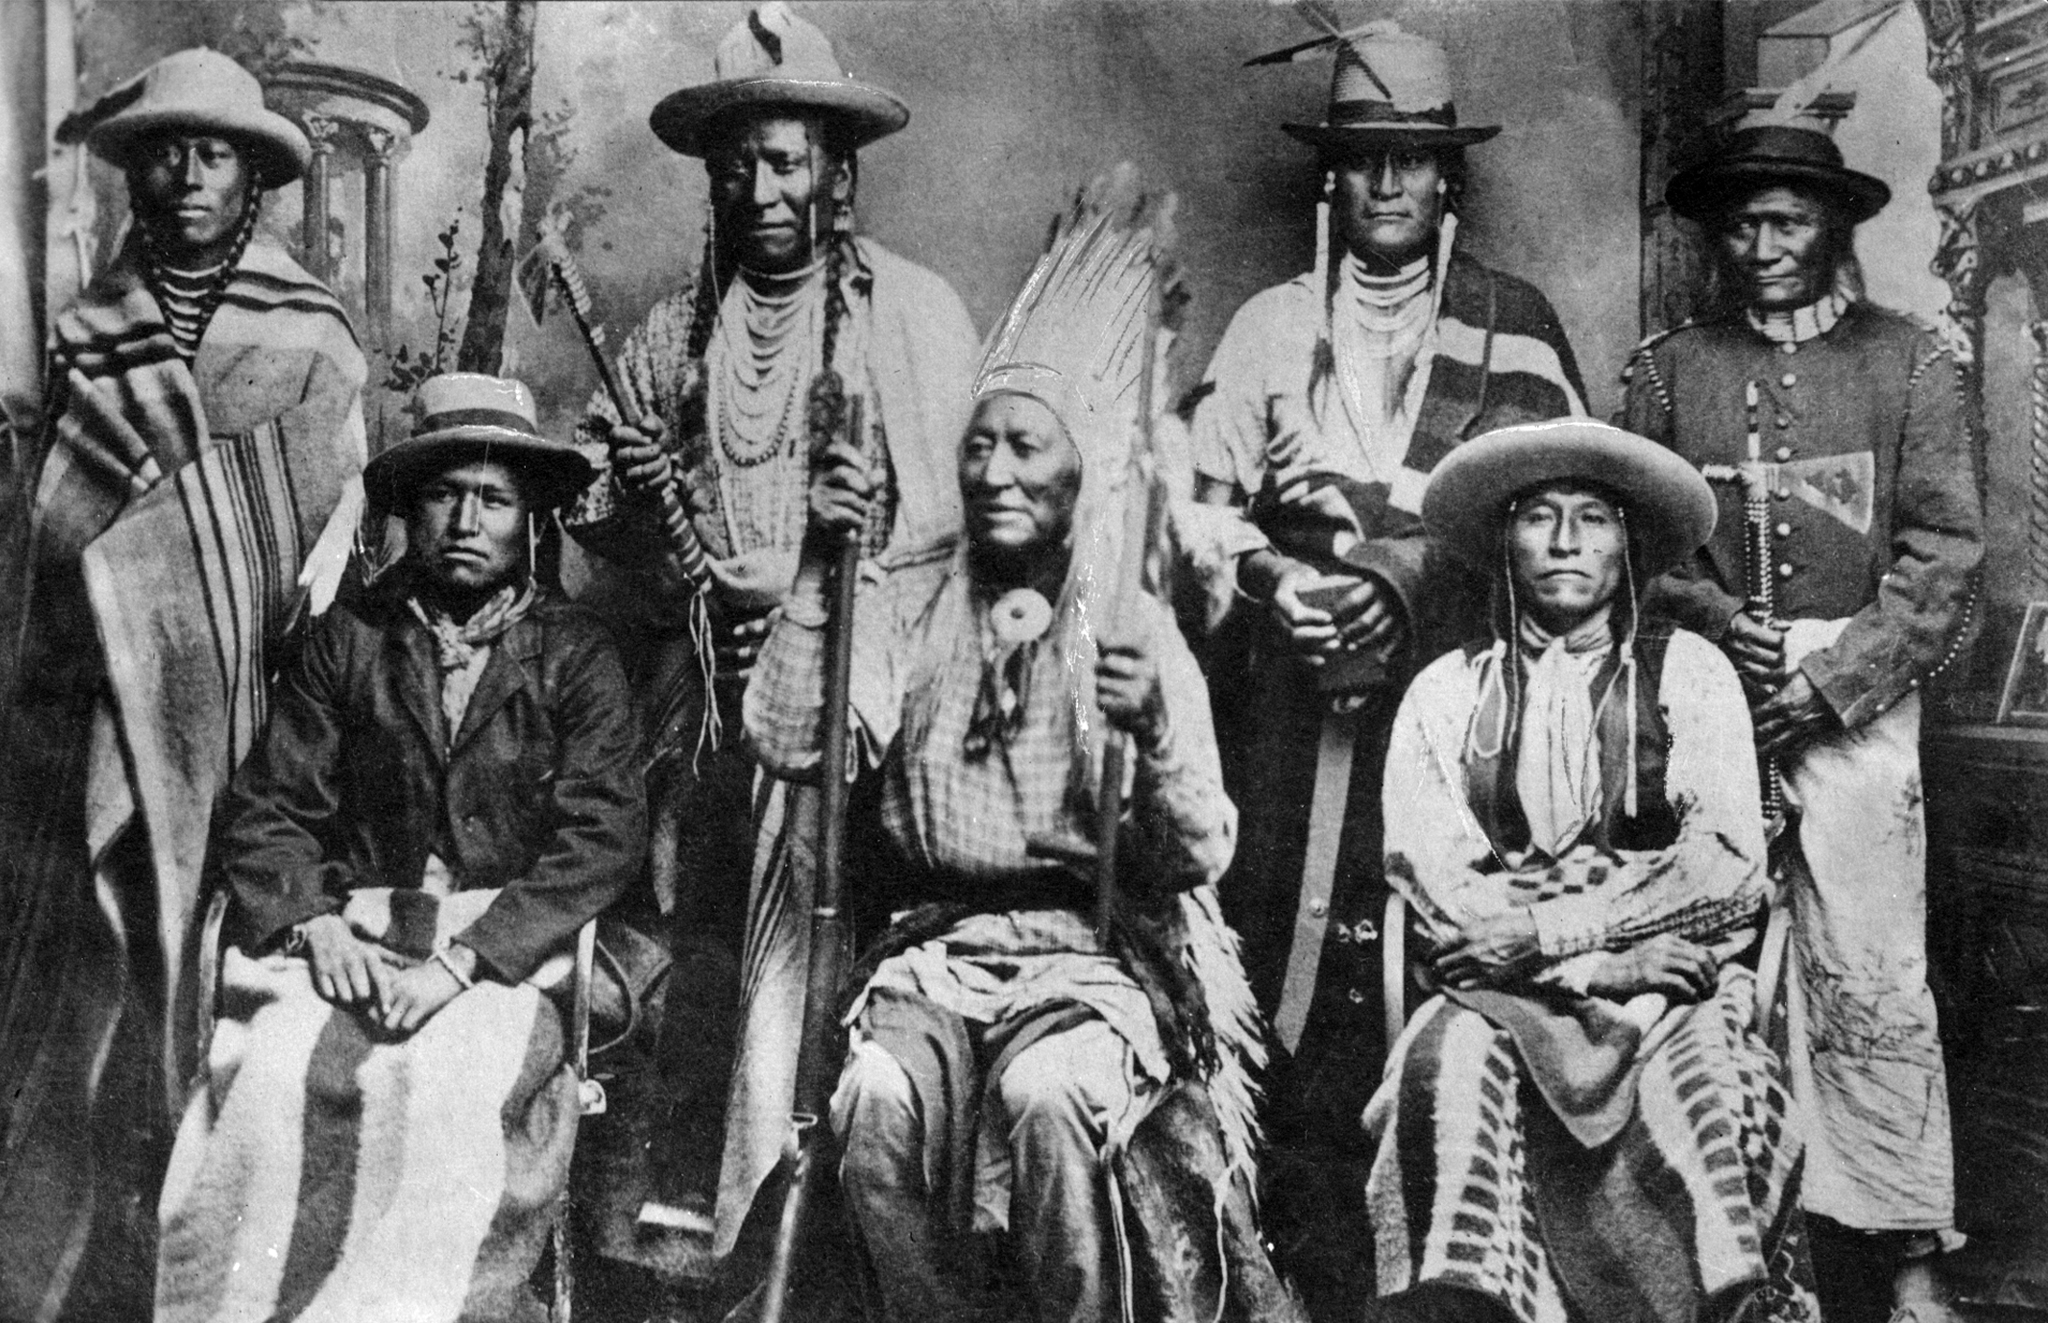 Chief Washakie and other Shoshone men